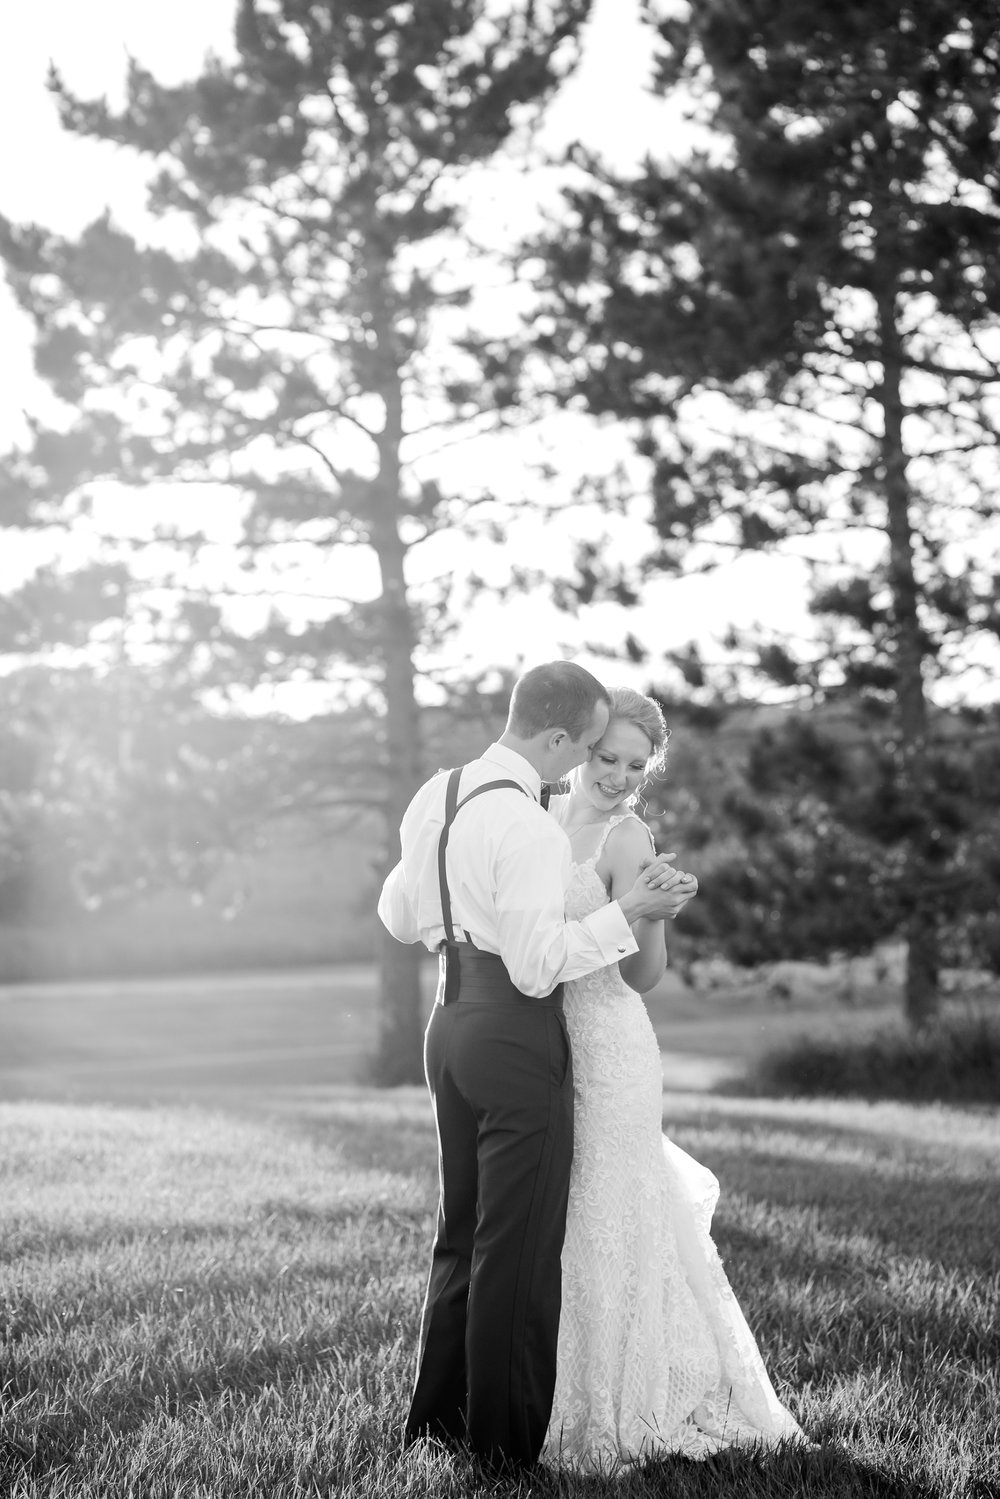 http://www.amberlangerud.com/blog/summertime-country-styled-barn-wedding-on-the-lake-at-the-barn-at-five-lakes-near-frazee-mn-adrienne-nick/2017/7/4